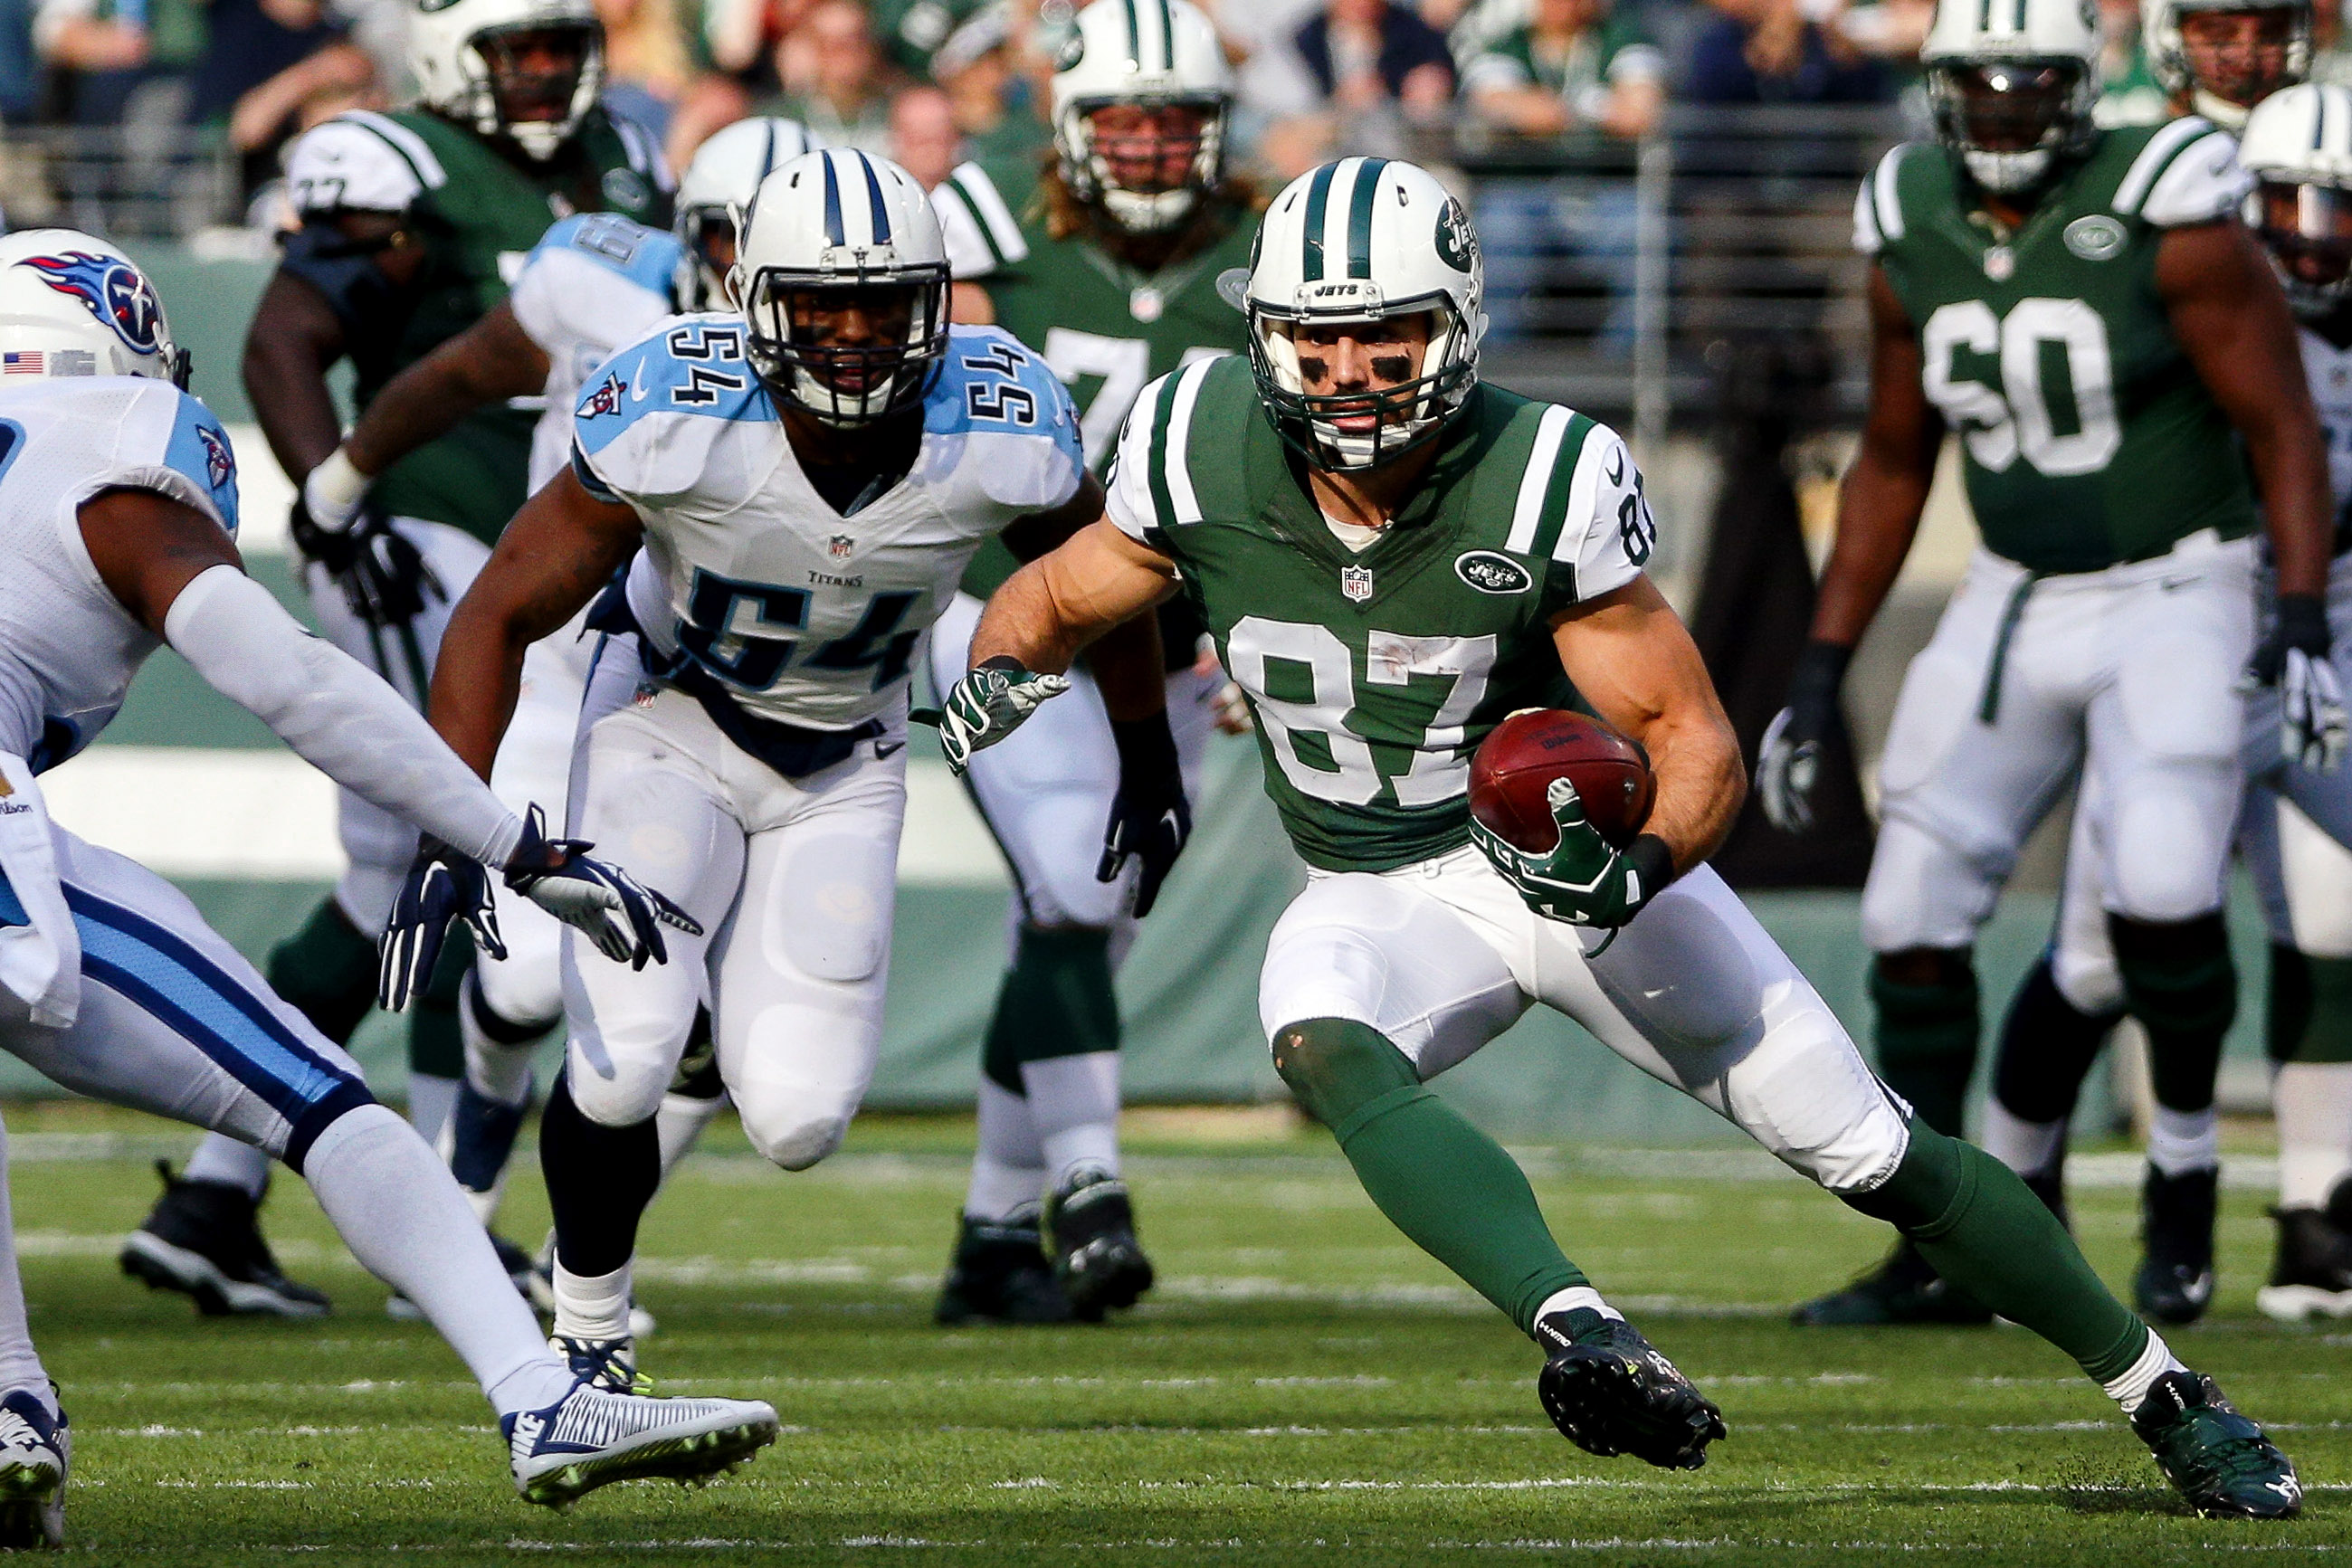 8994875-nfl-tennessee-titans-at-new-york-jets